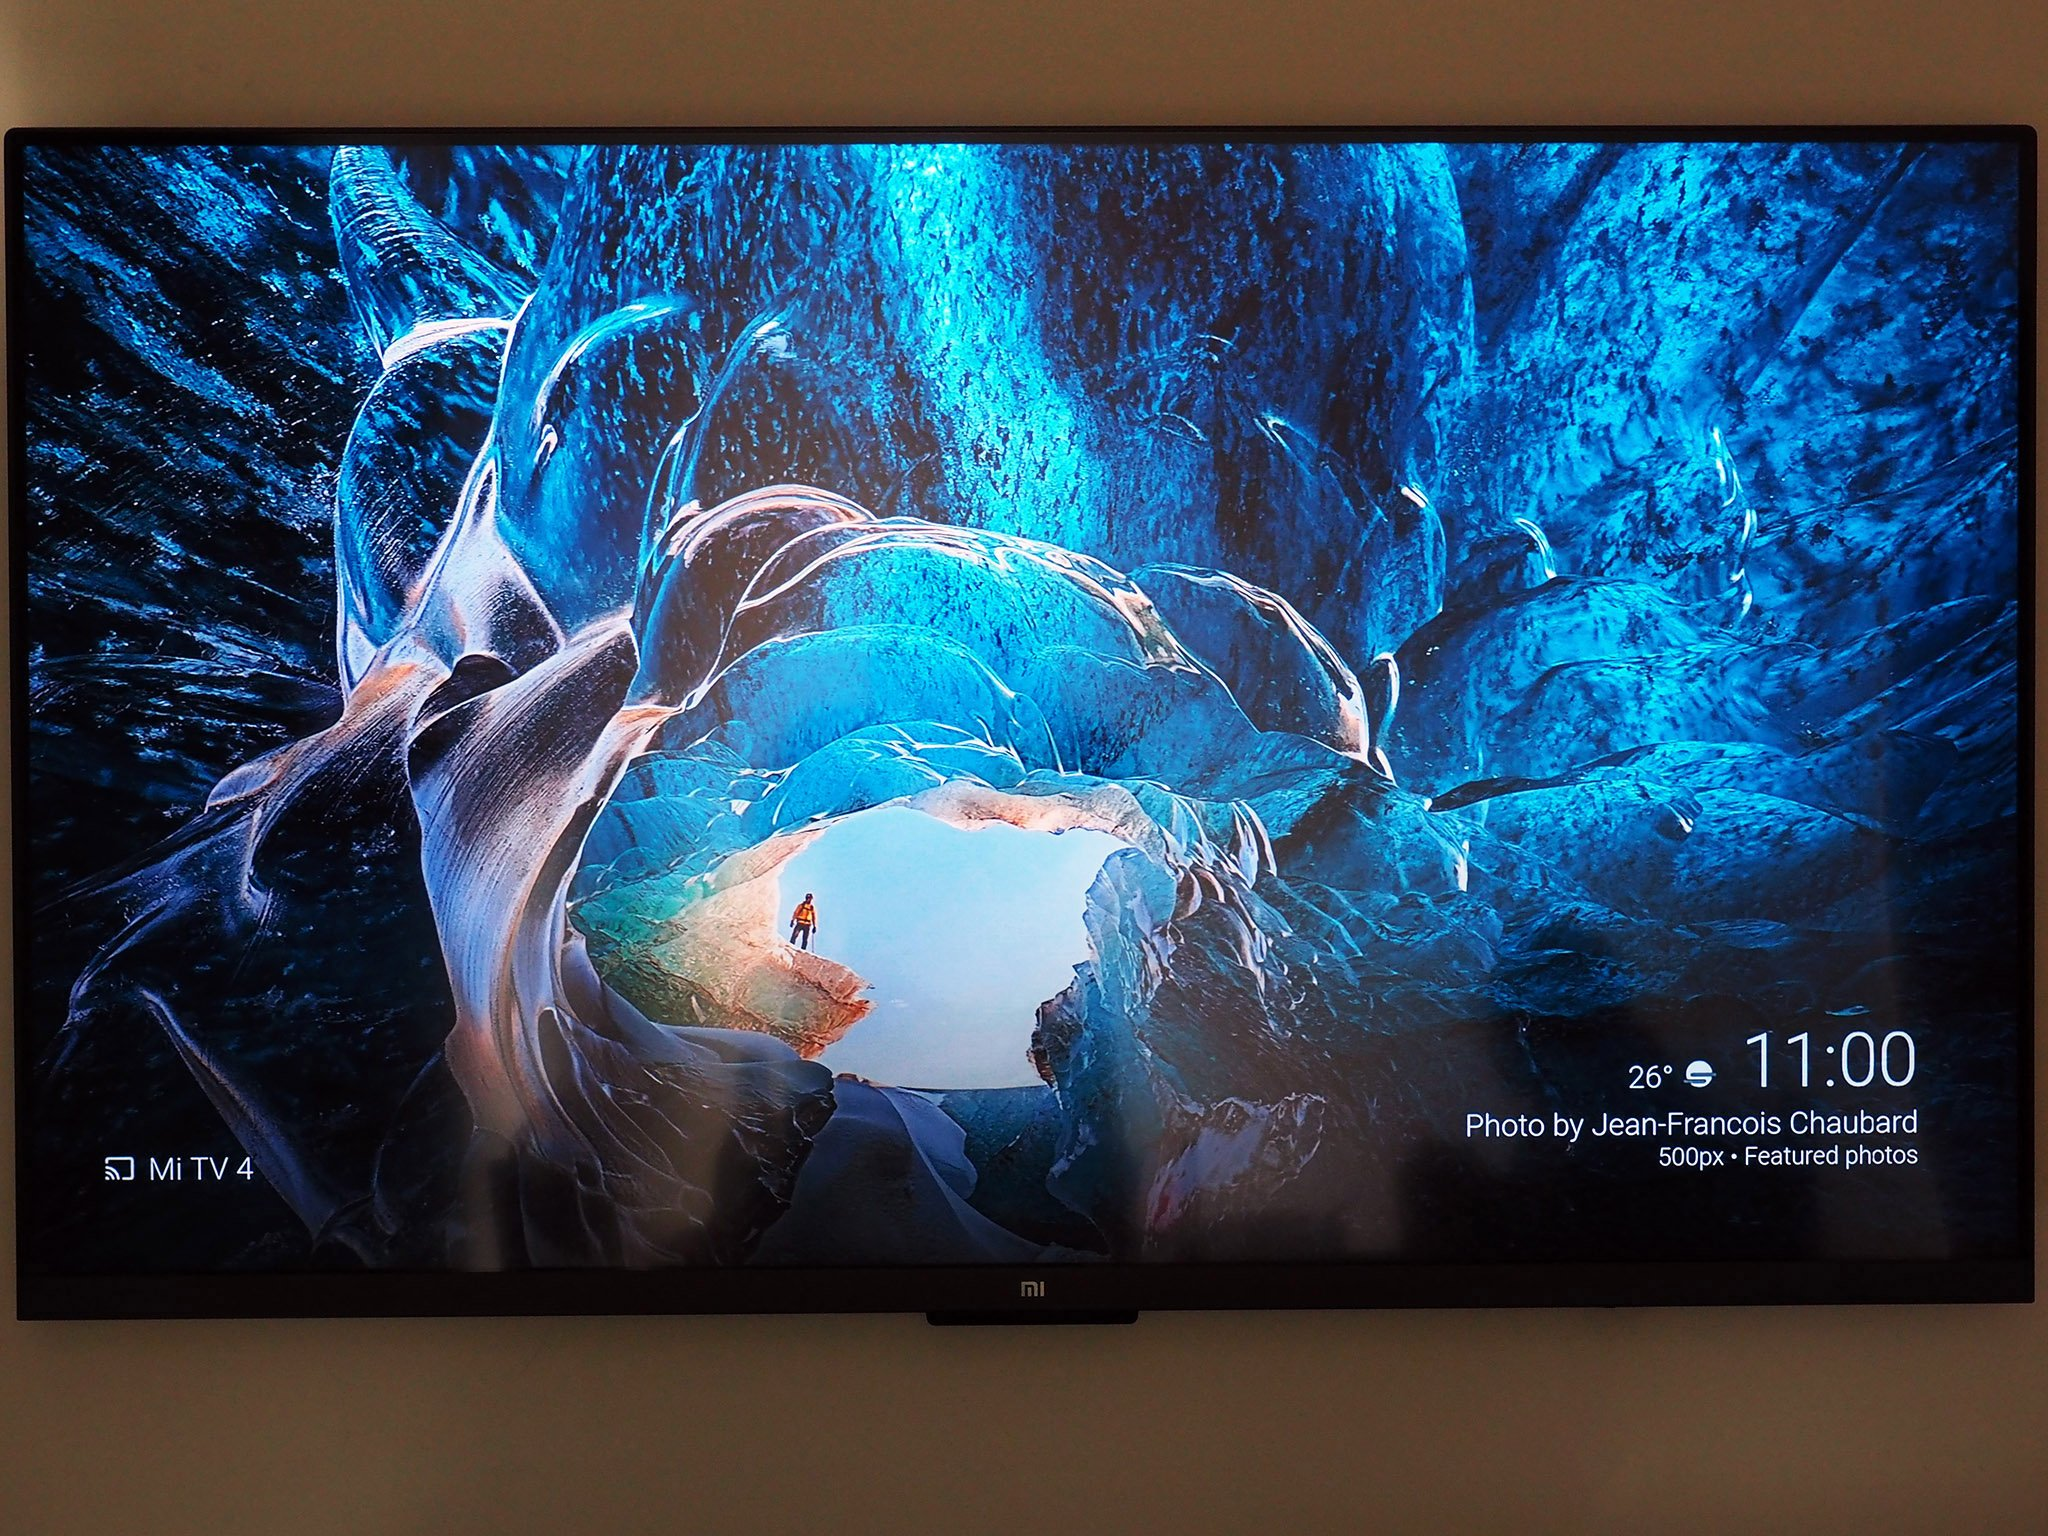 Tv 4 Xiaomi Mi Led Smart Tv Review The Best Budget 4k Tv You Can Buy